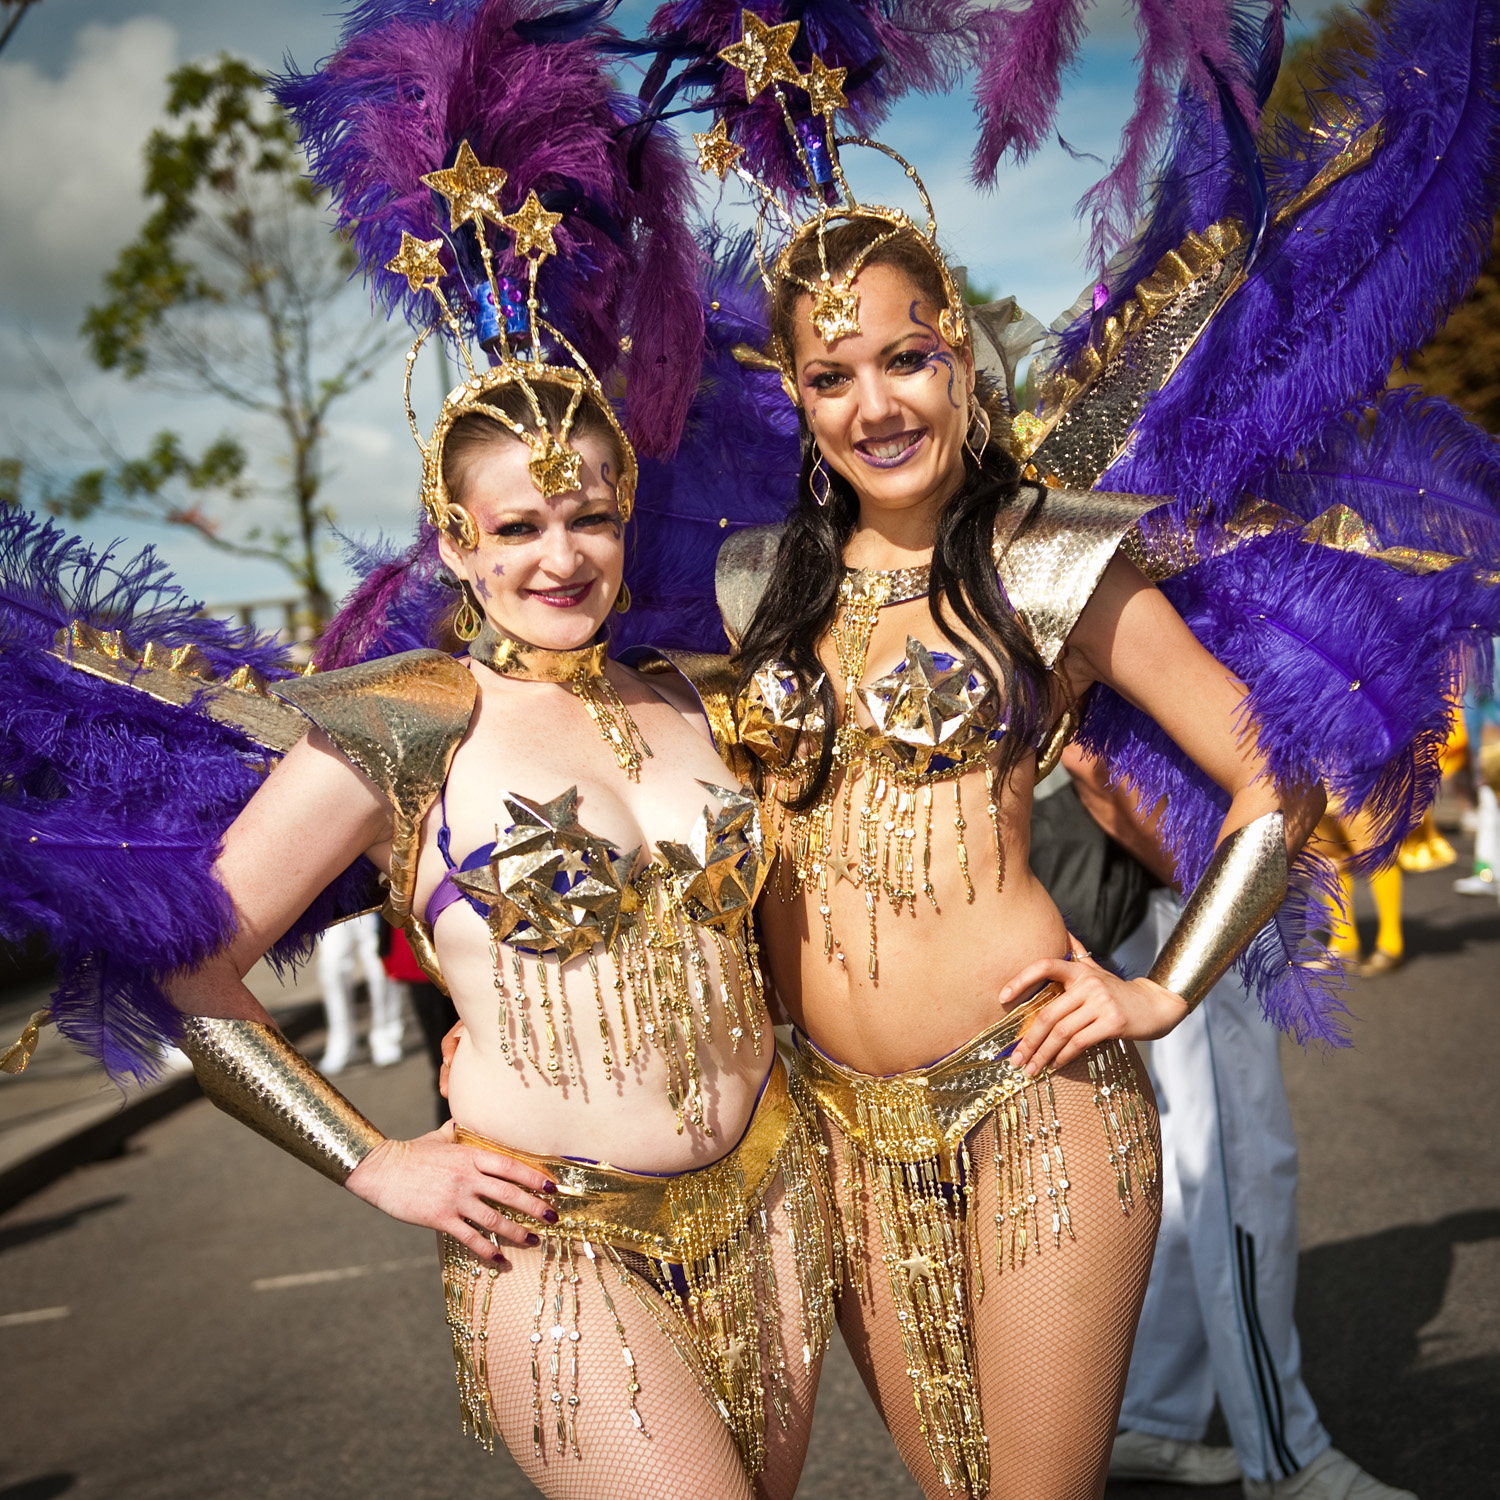 Carnival_the_rest_01